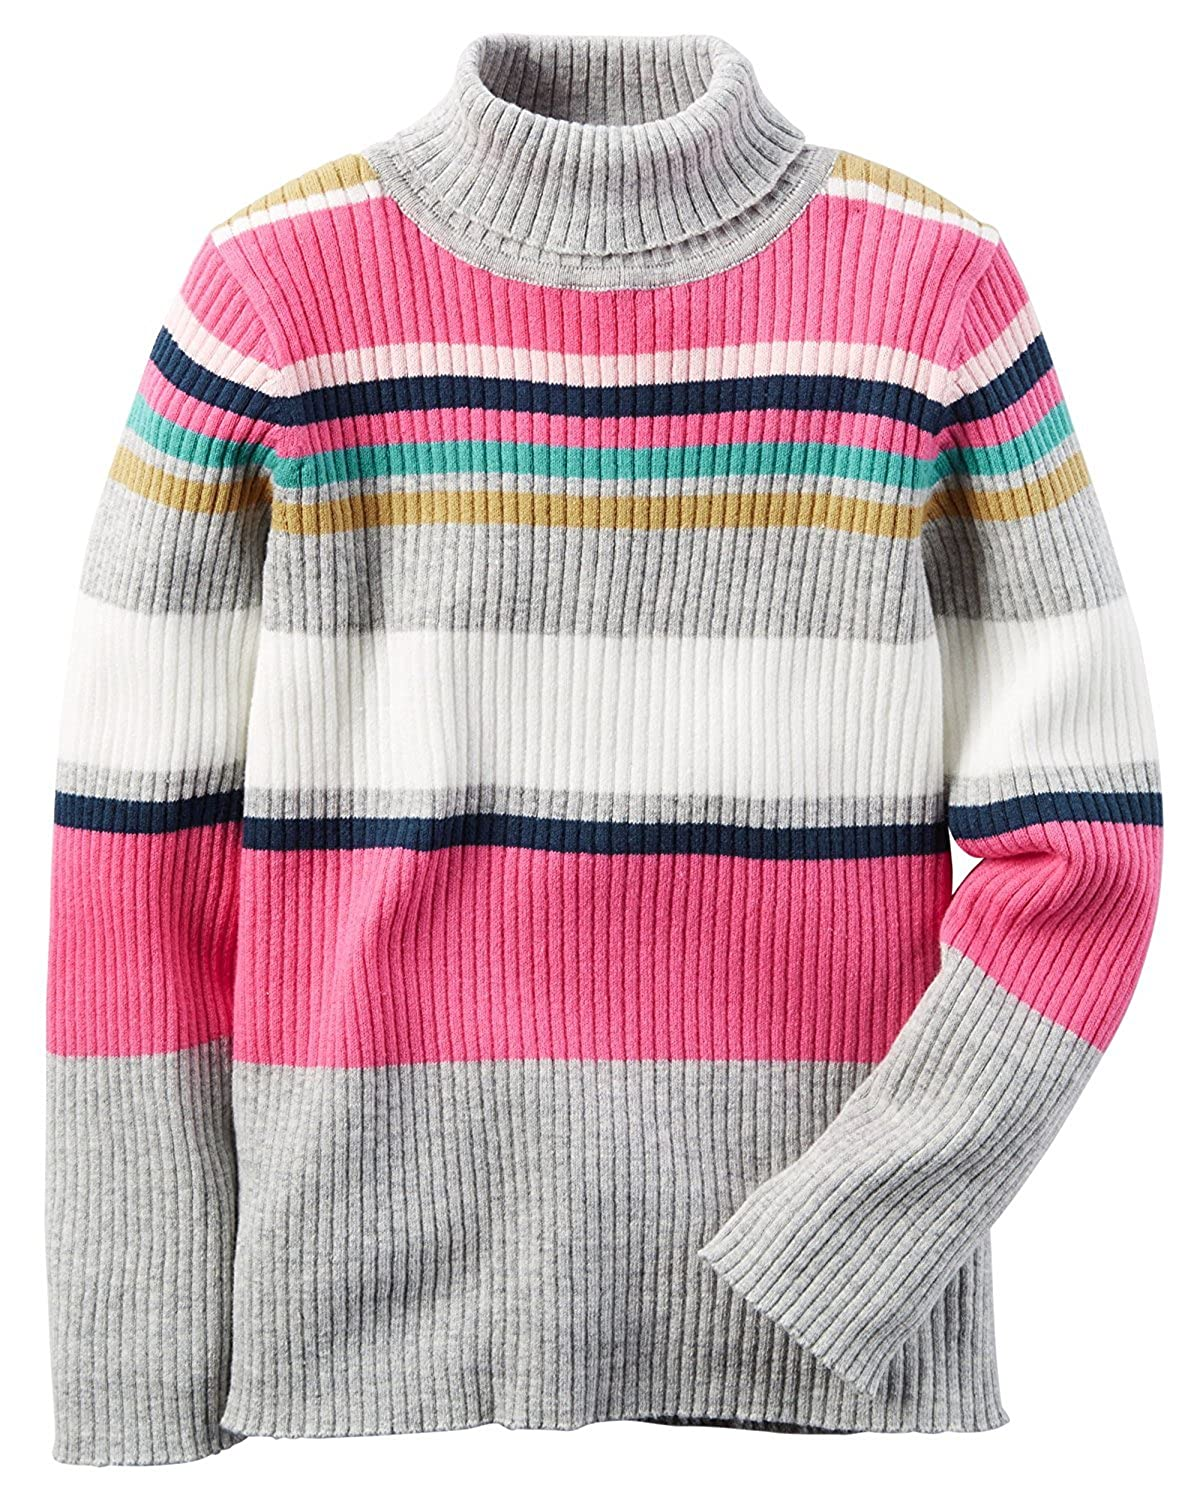 Carters Baby Girls Striped Turtleneck Sweater 24m Pink